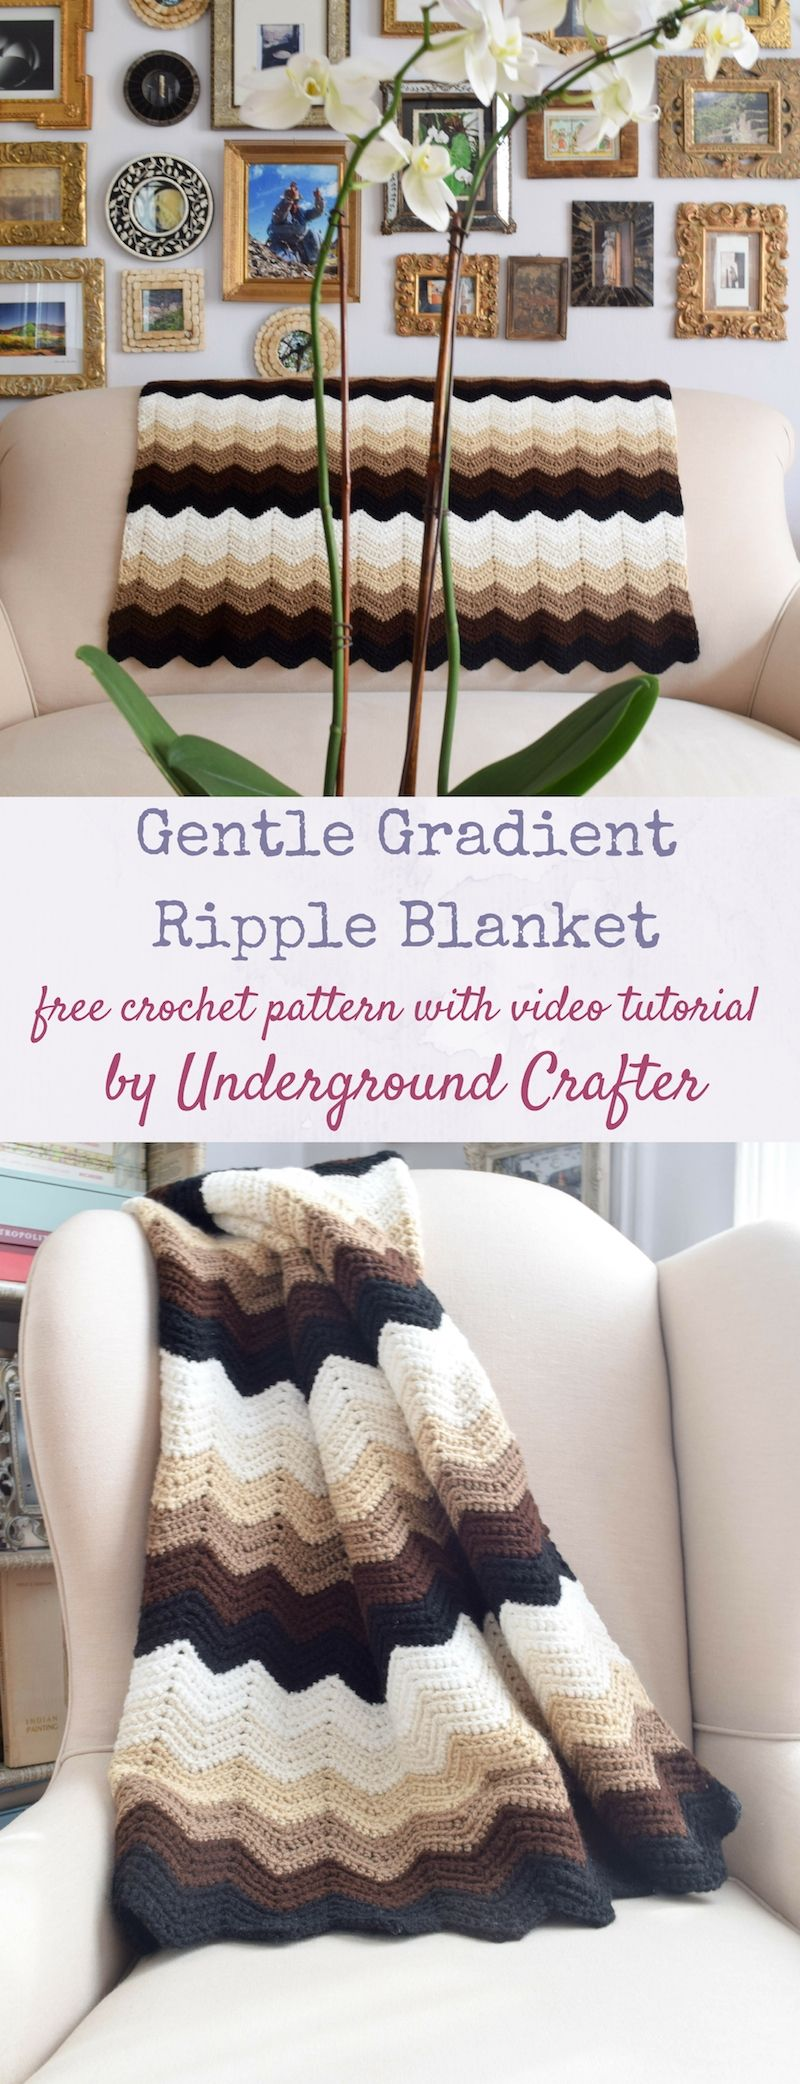 Gentle Gradient Ripple Blanket, free crochet pattern/video | Free ...